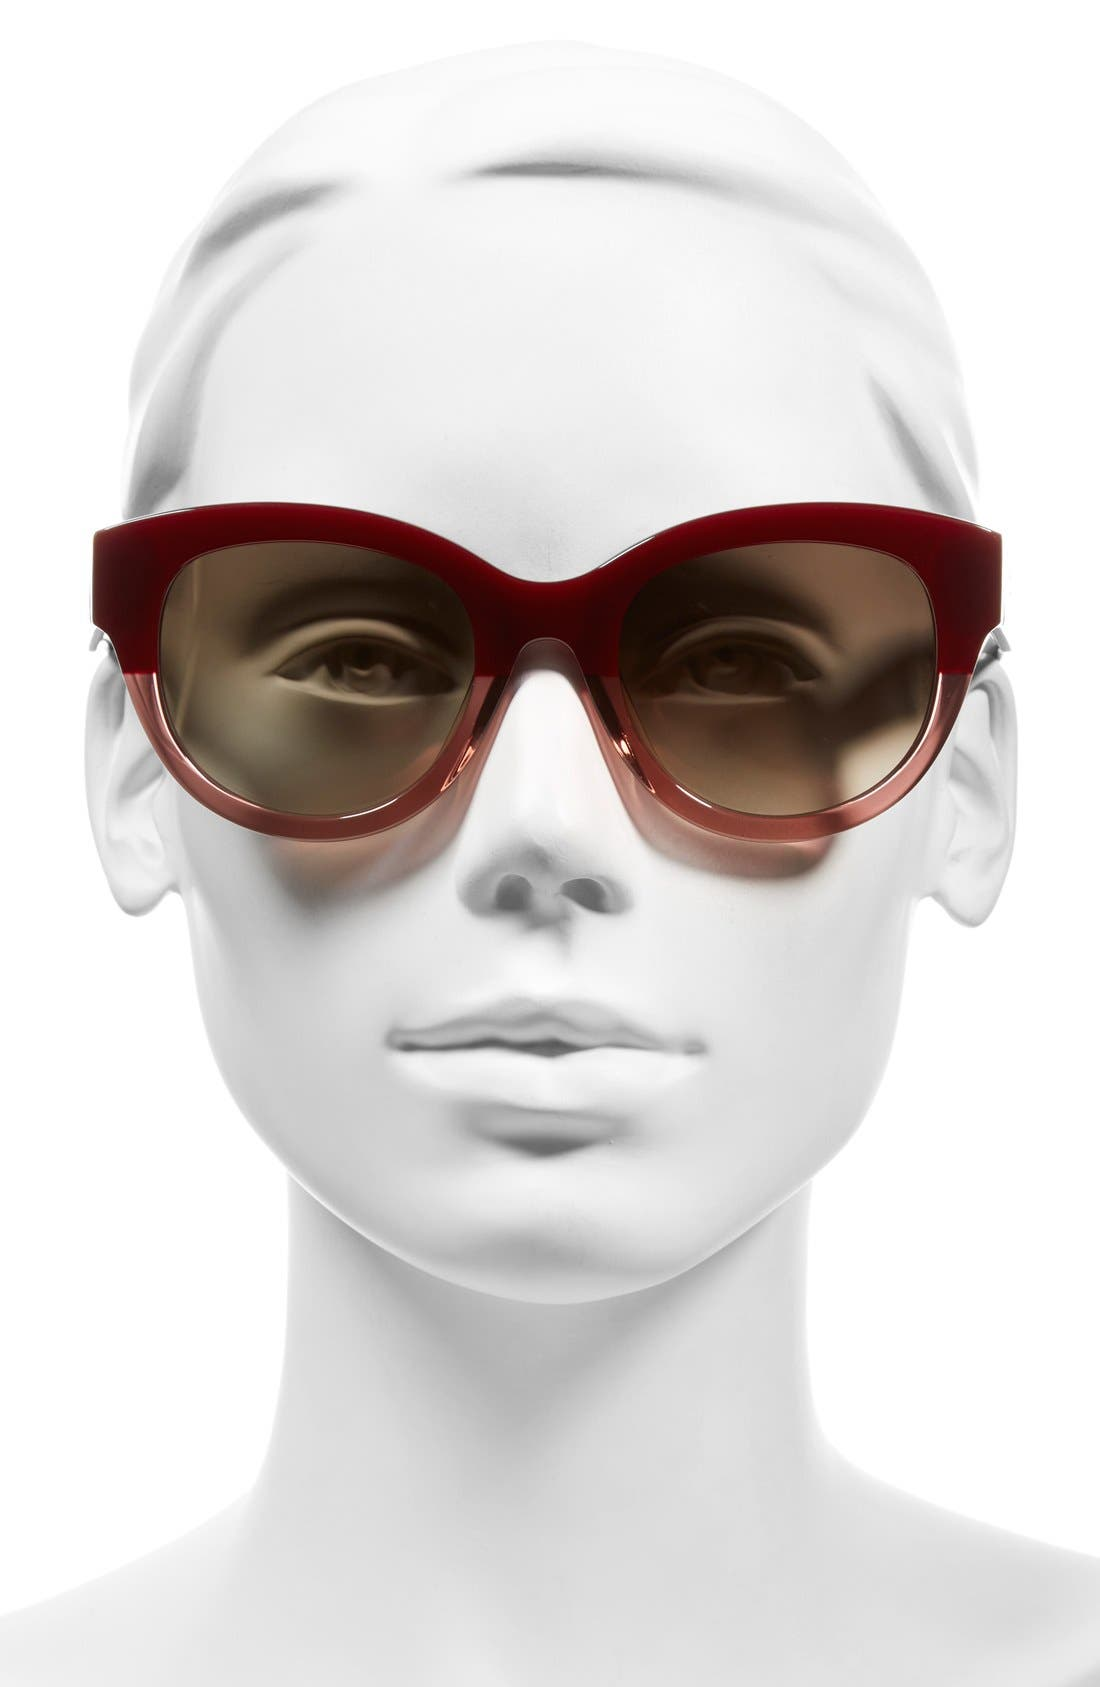 53mm Cat Eye Sunglasses,                             Alternate thumbnail 2, color,                             Bordeaux/ Antique Rose